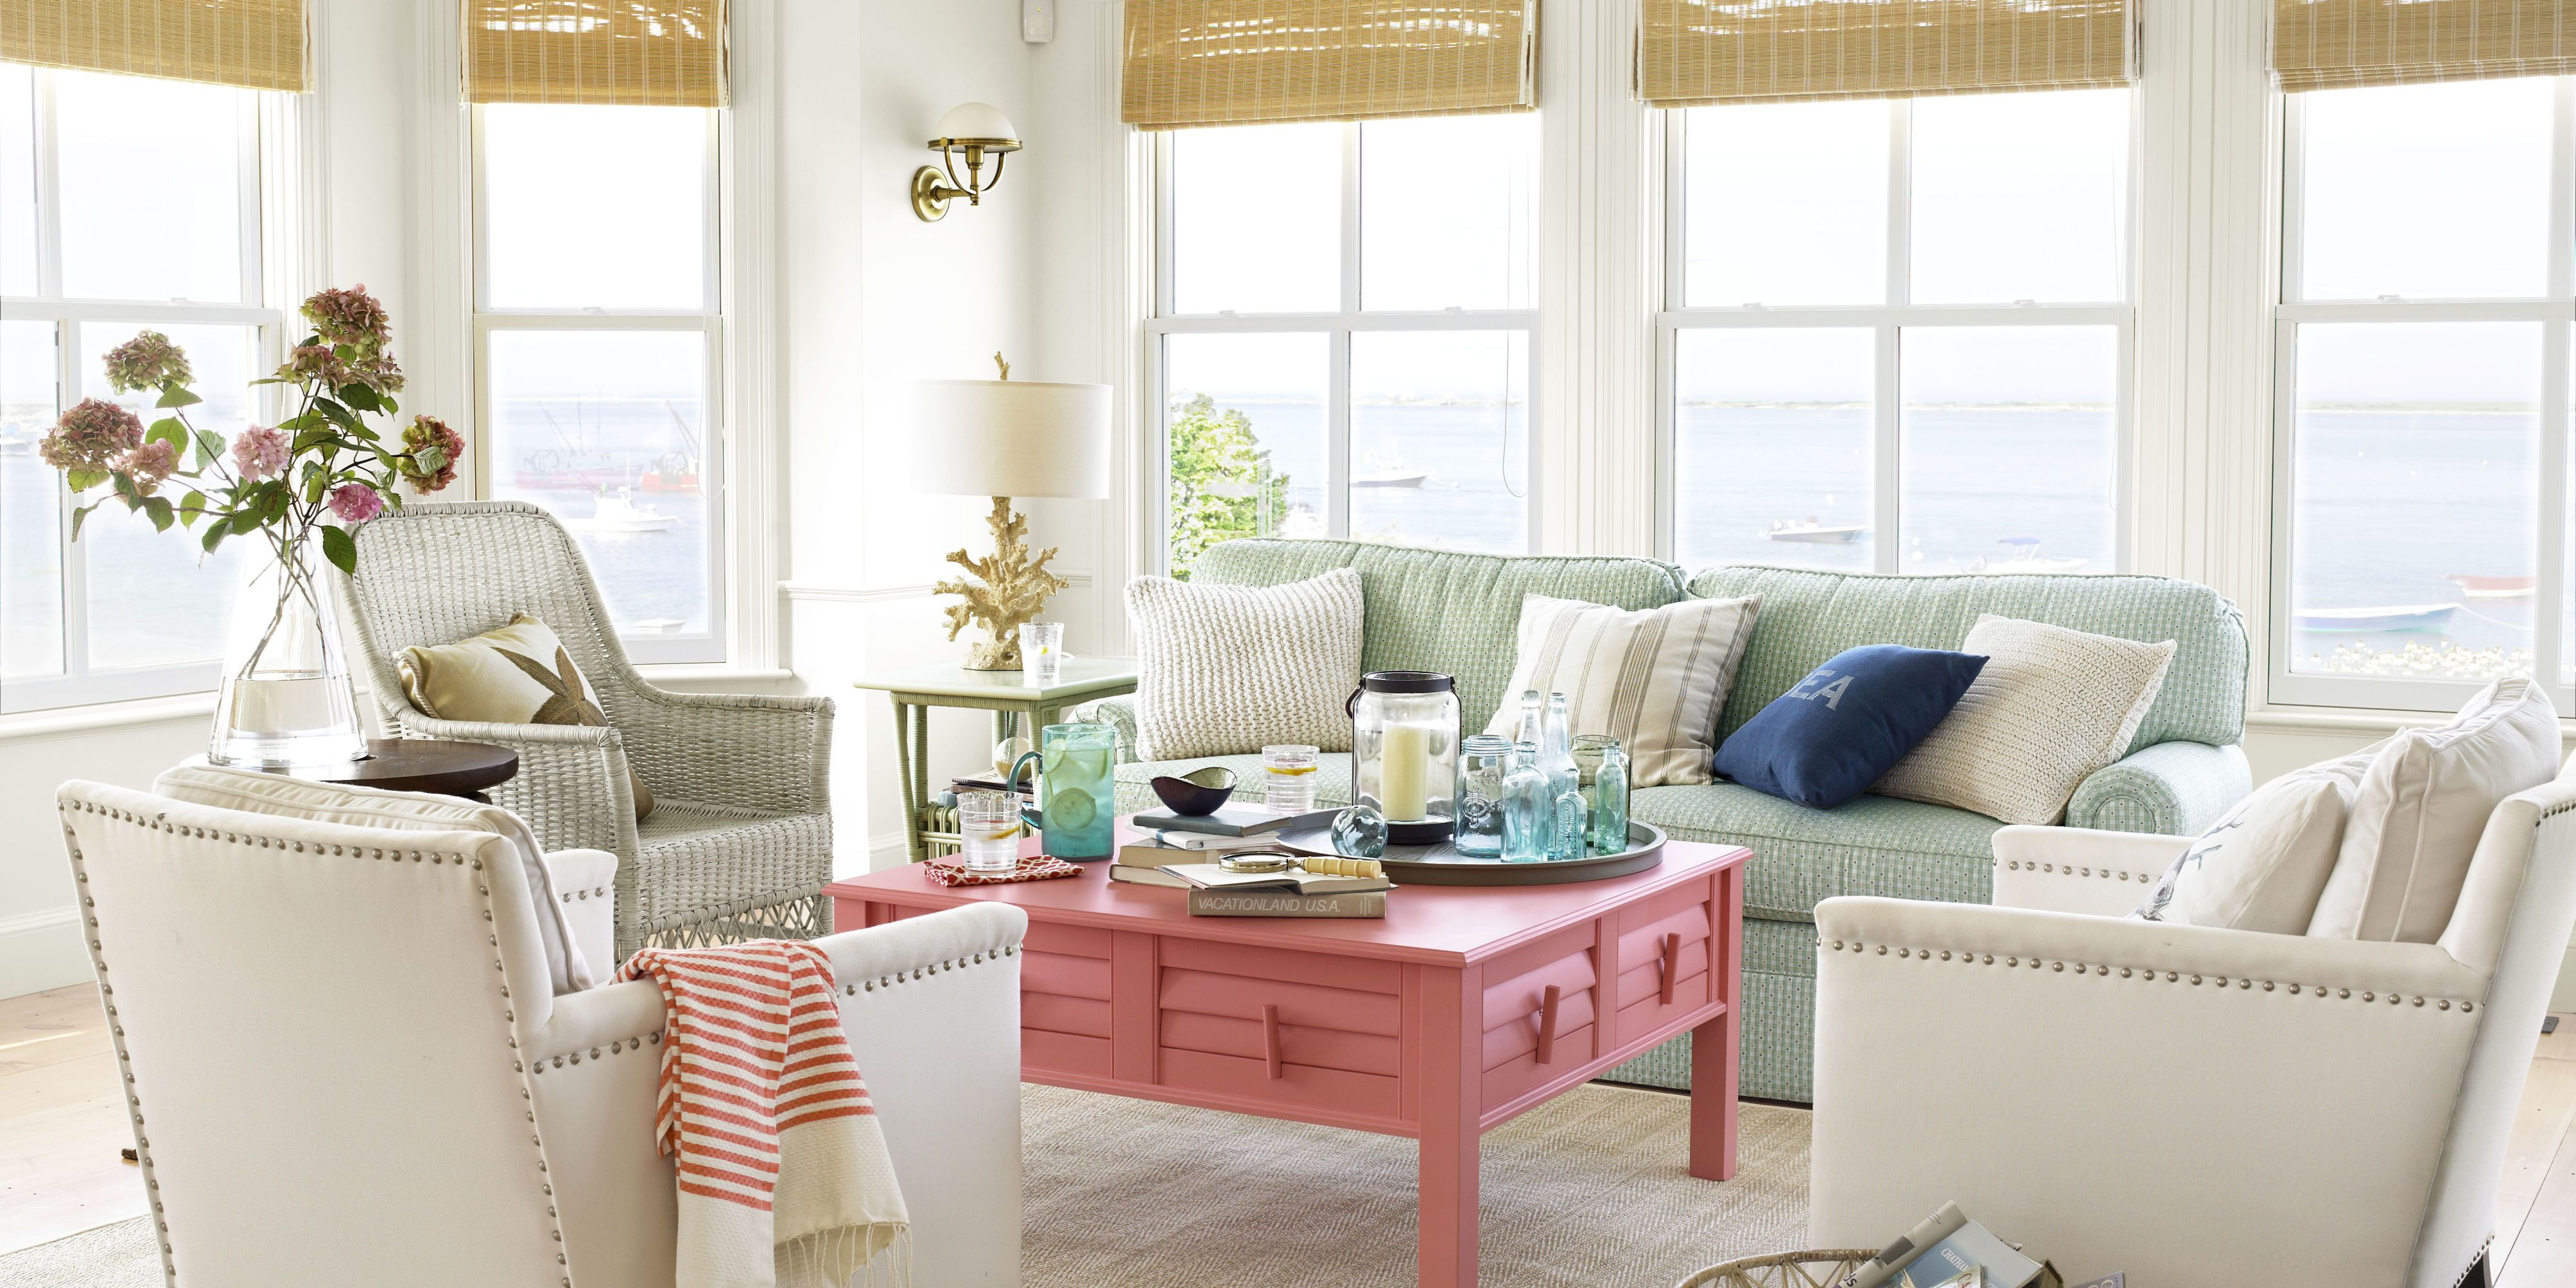 Whether You Live By The Beach Or Just Dream About Ocean Breezes, Enhance  The Natural Beauty Of Your Home With Crisp White, Splashes Of Bold Color,  ...